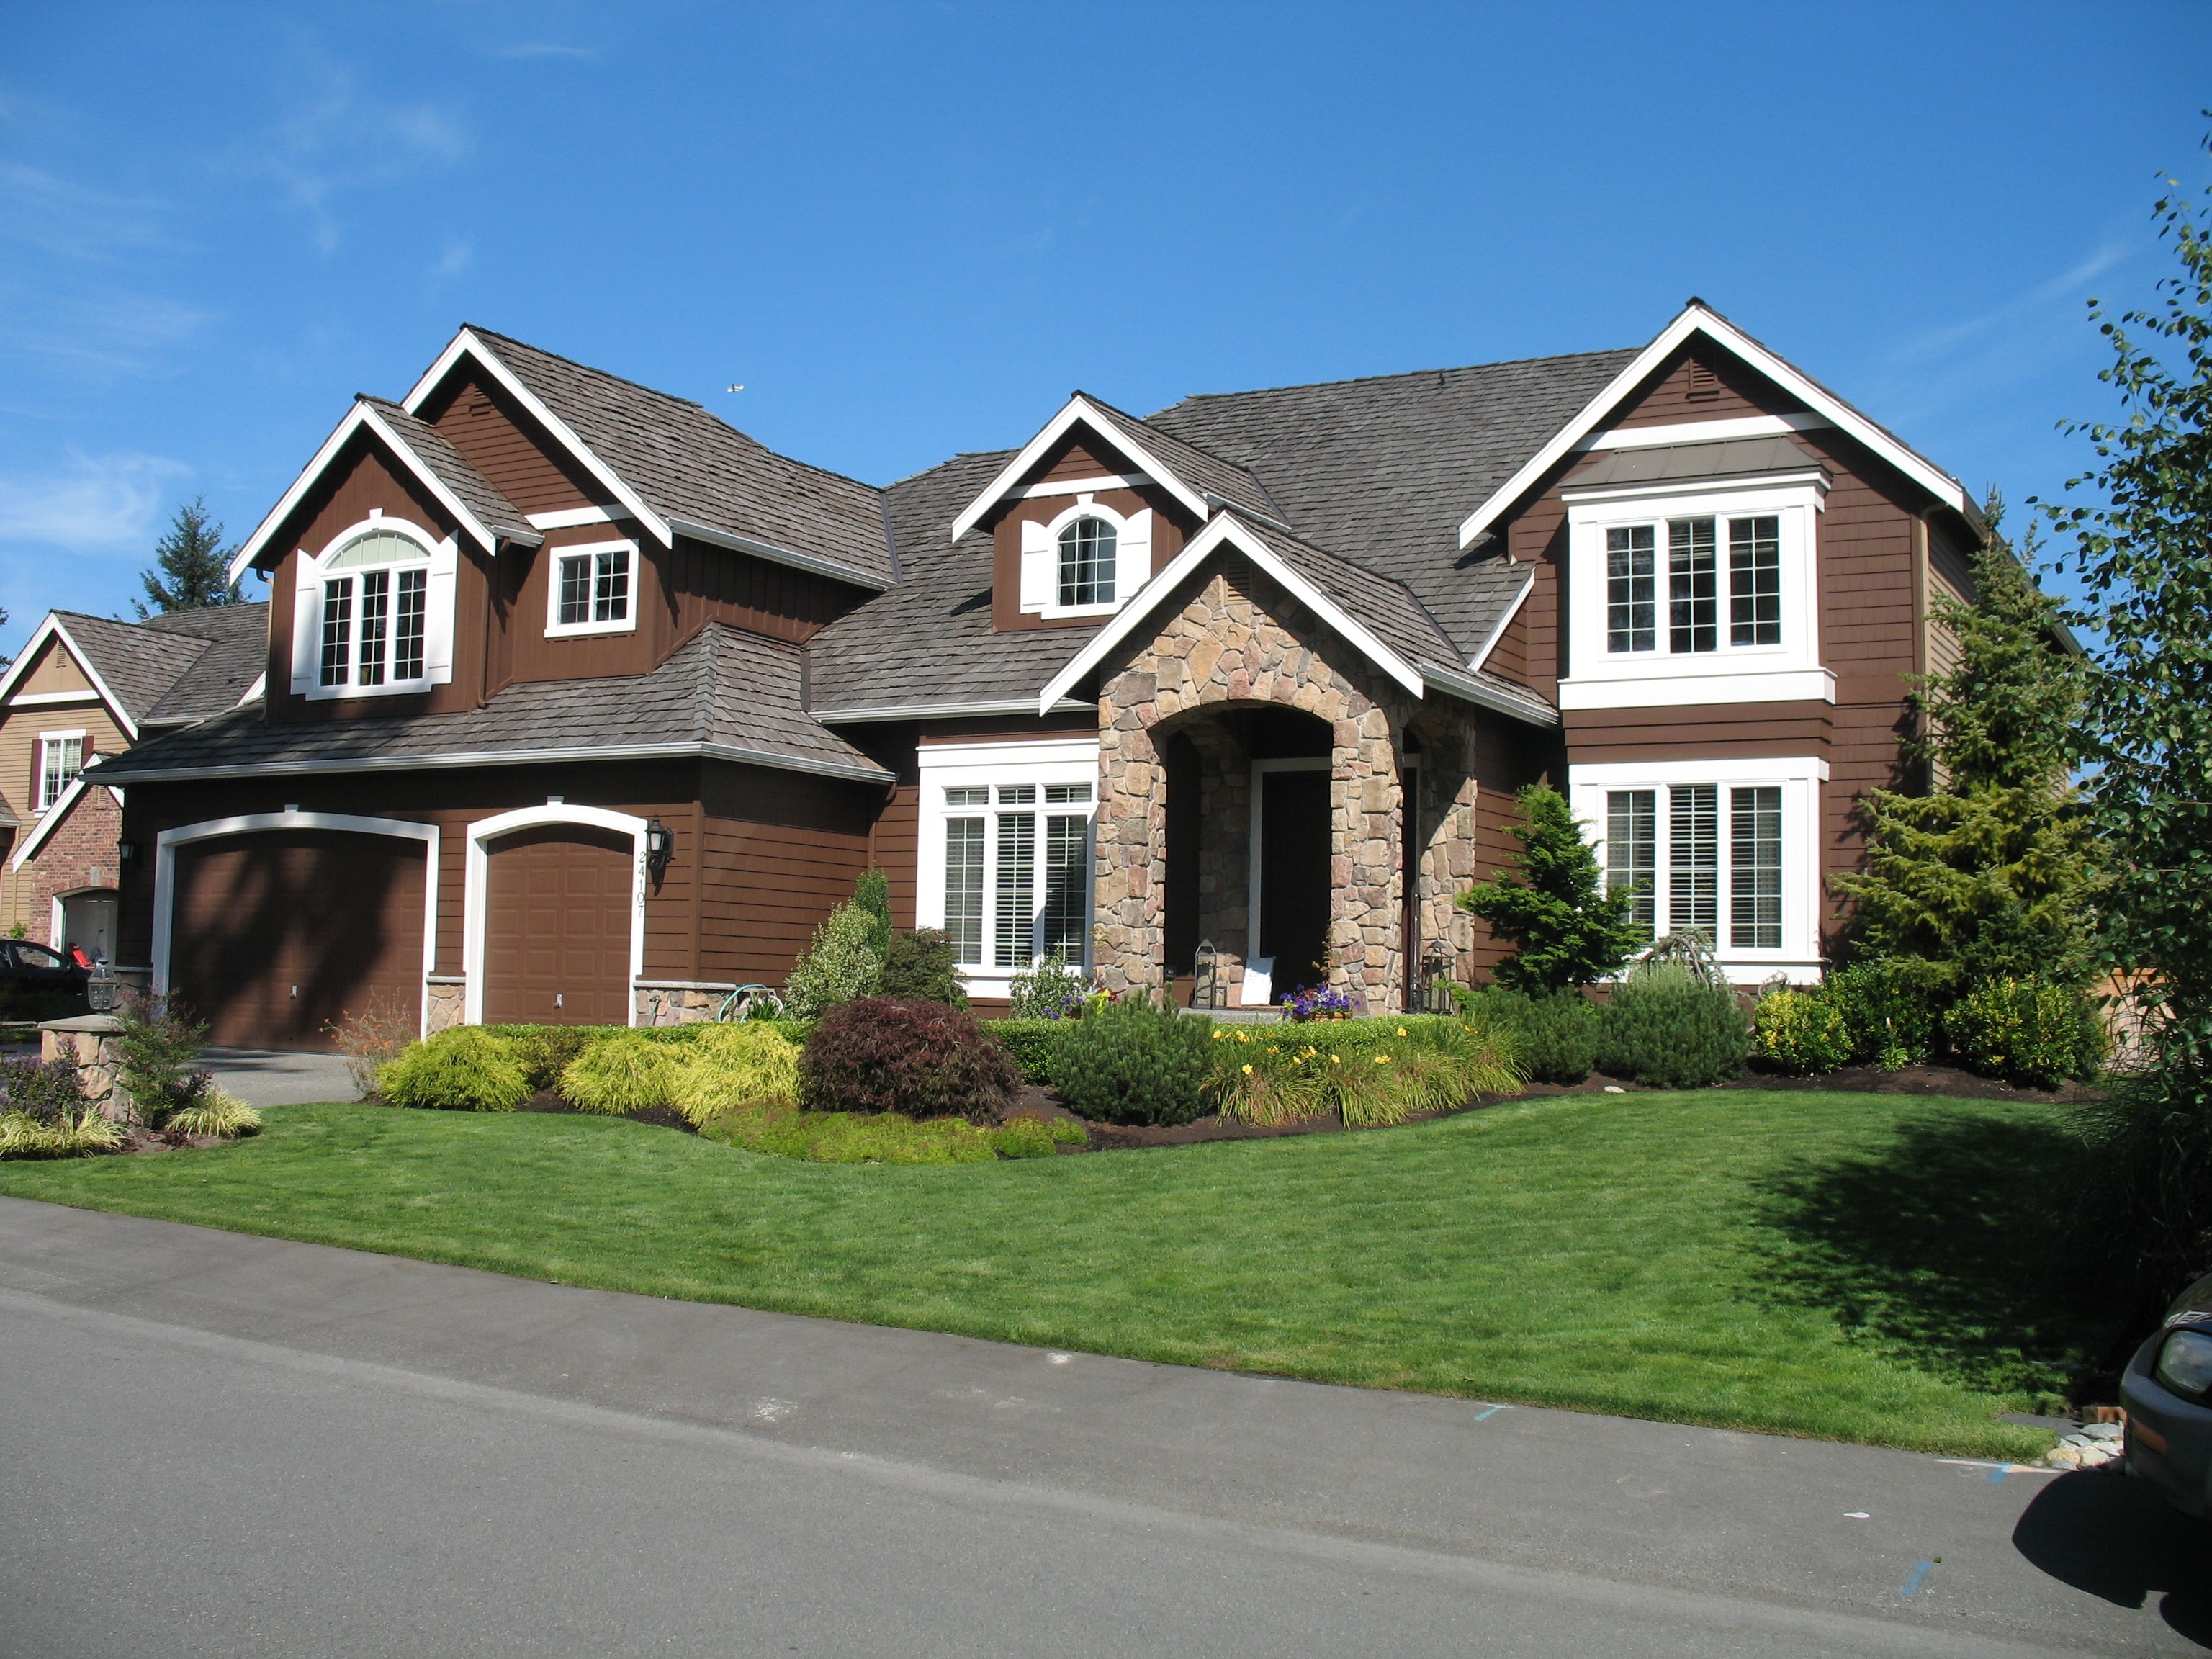 Exterior house color schemes with black shutters - Top 20 Brown Houses With White Trim Light Dark Exterior Ideas